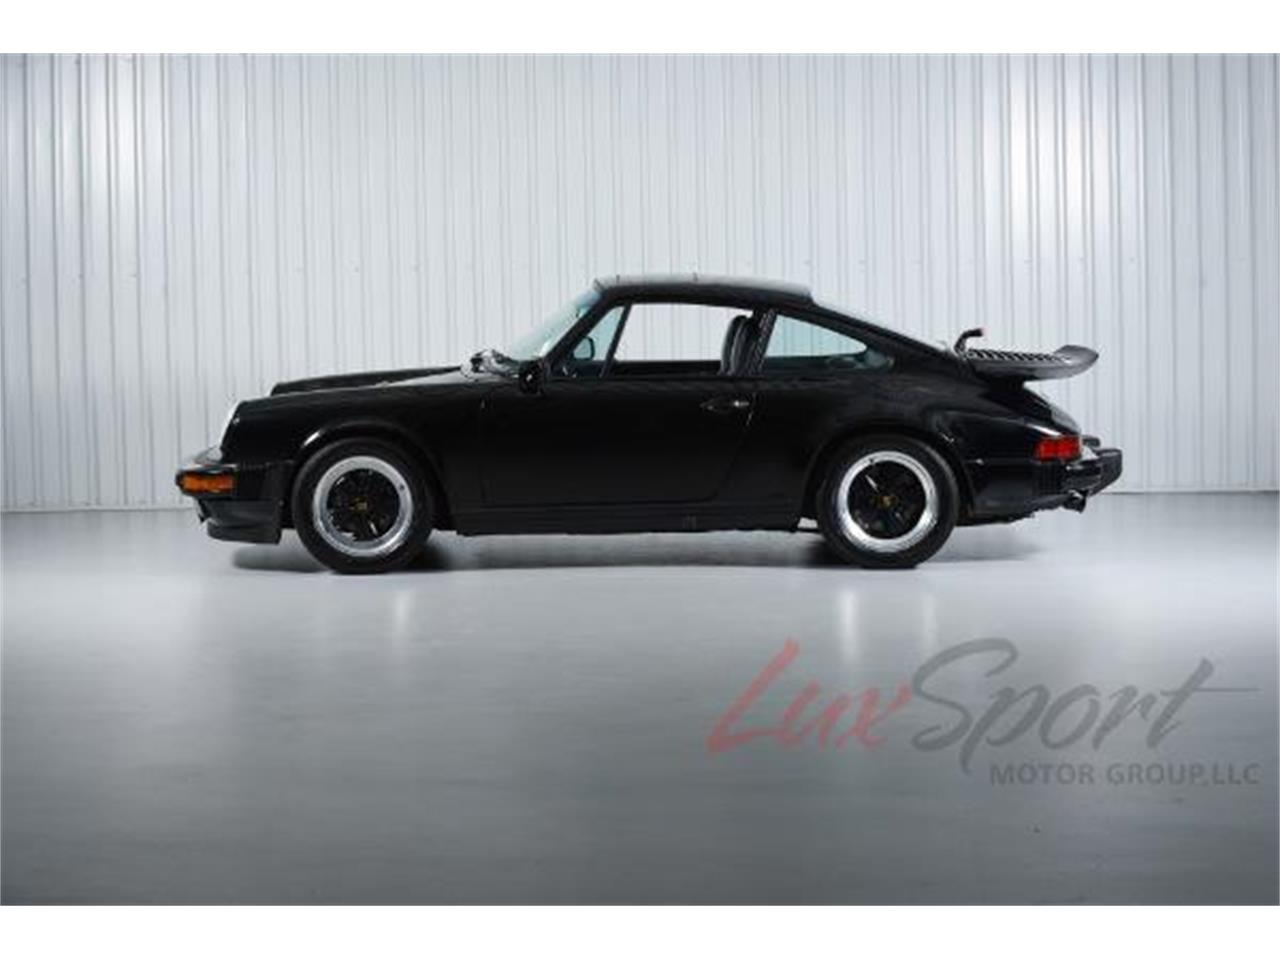 Large Picture of 1987 Porsche 911 Carrera located in New Hyde Park New York Auction Vehicle Offered by LuxSport Motor Group, LLC - JIKQ